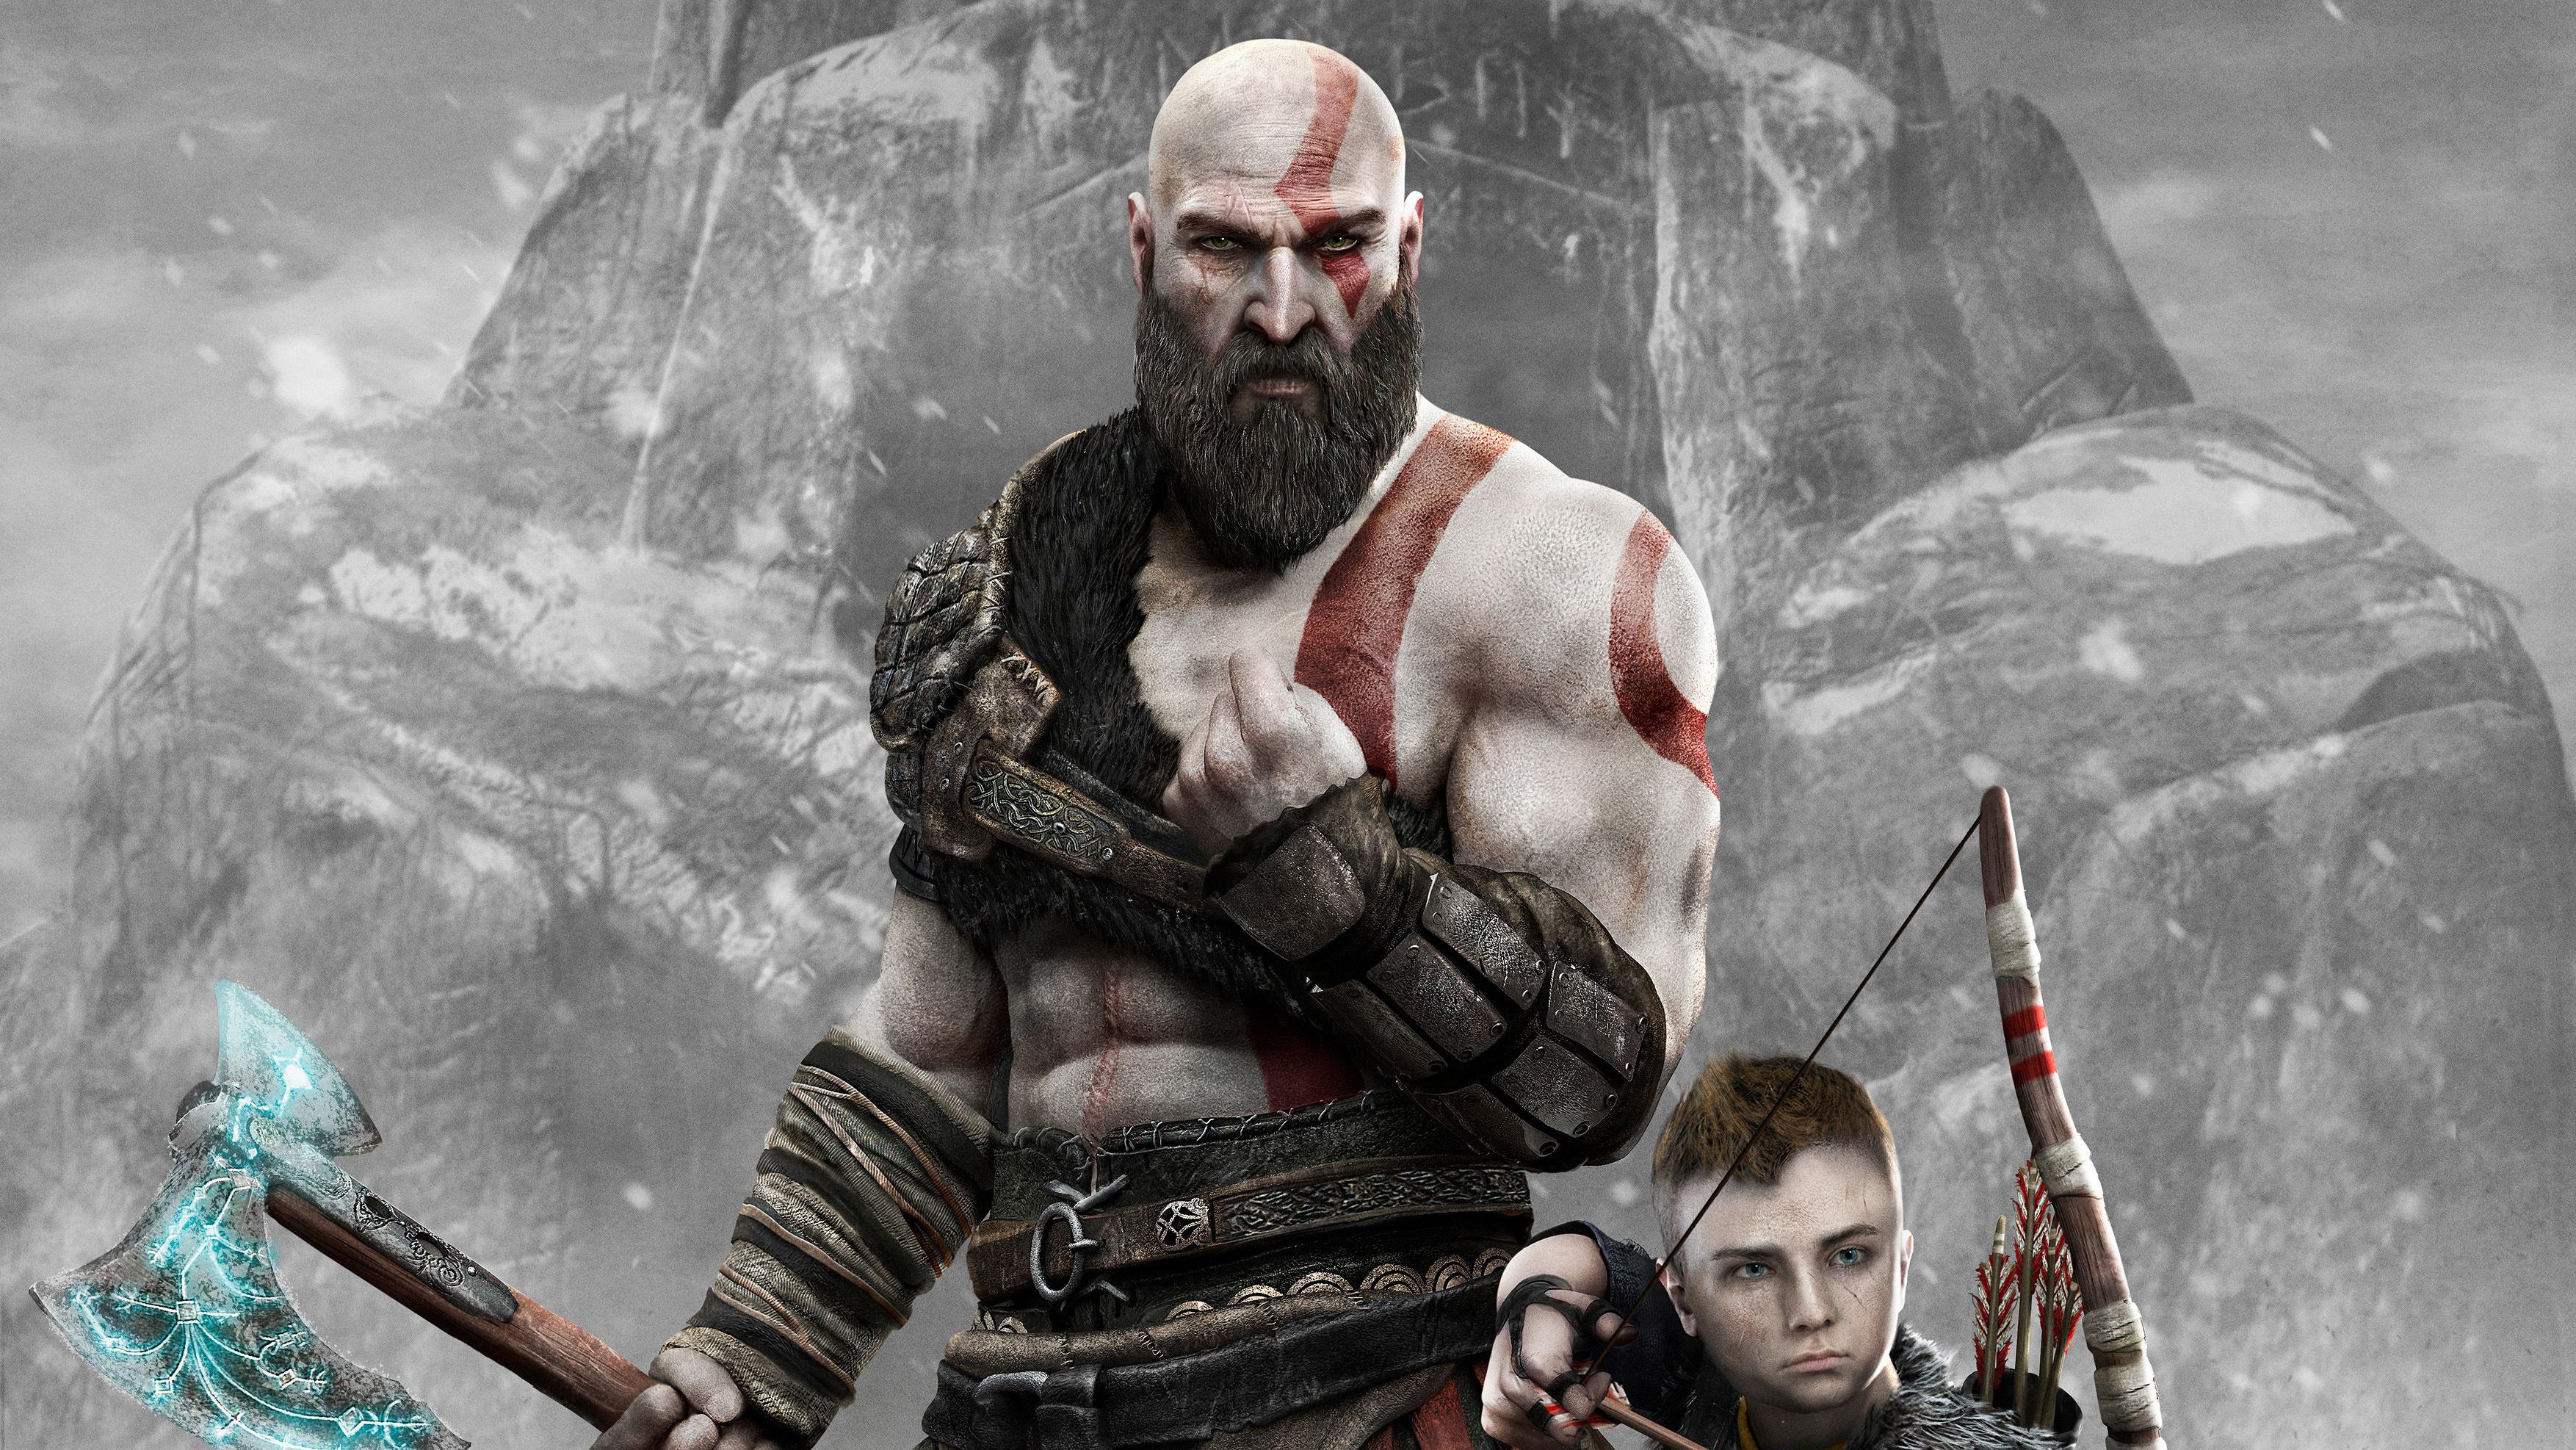 1280x768 Kratos And Atreus God Of War 4 4k 2018 1280x768